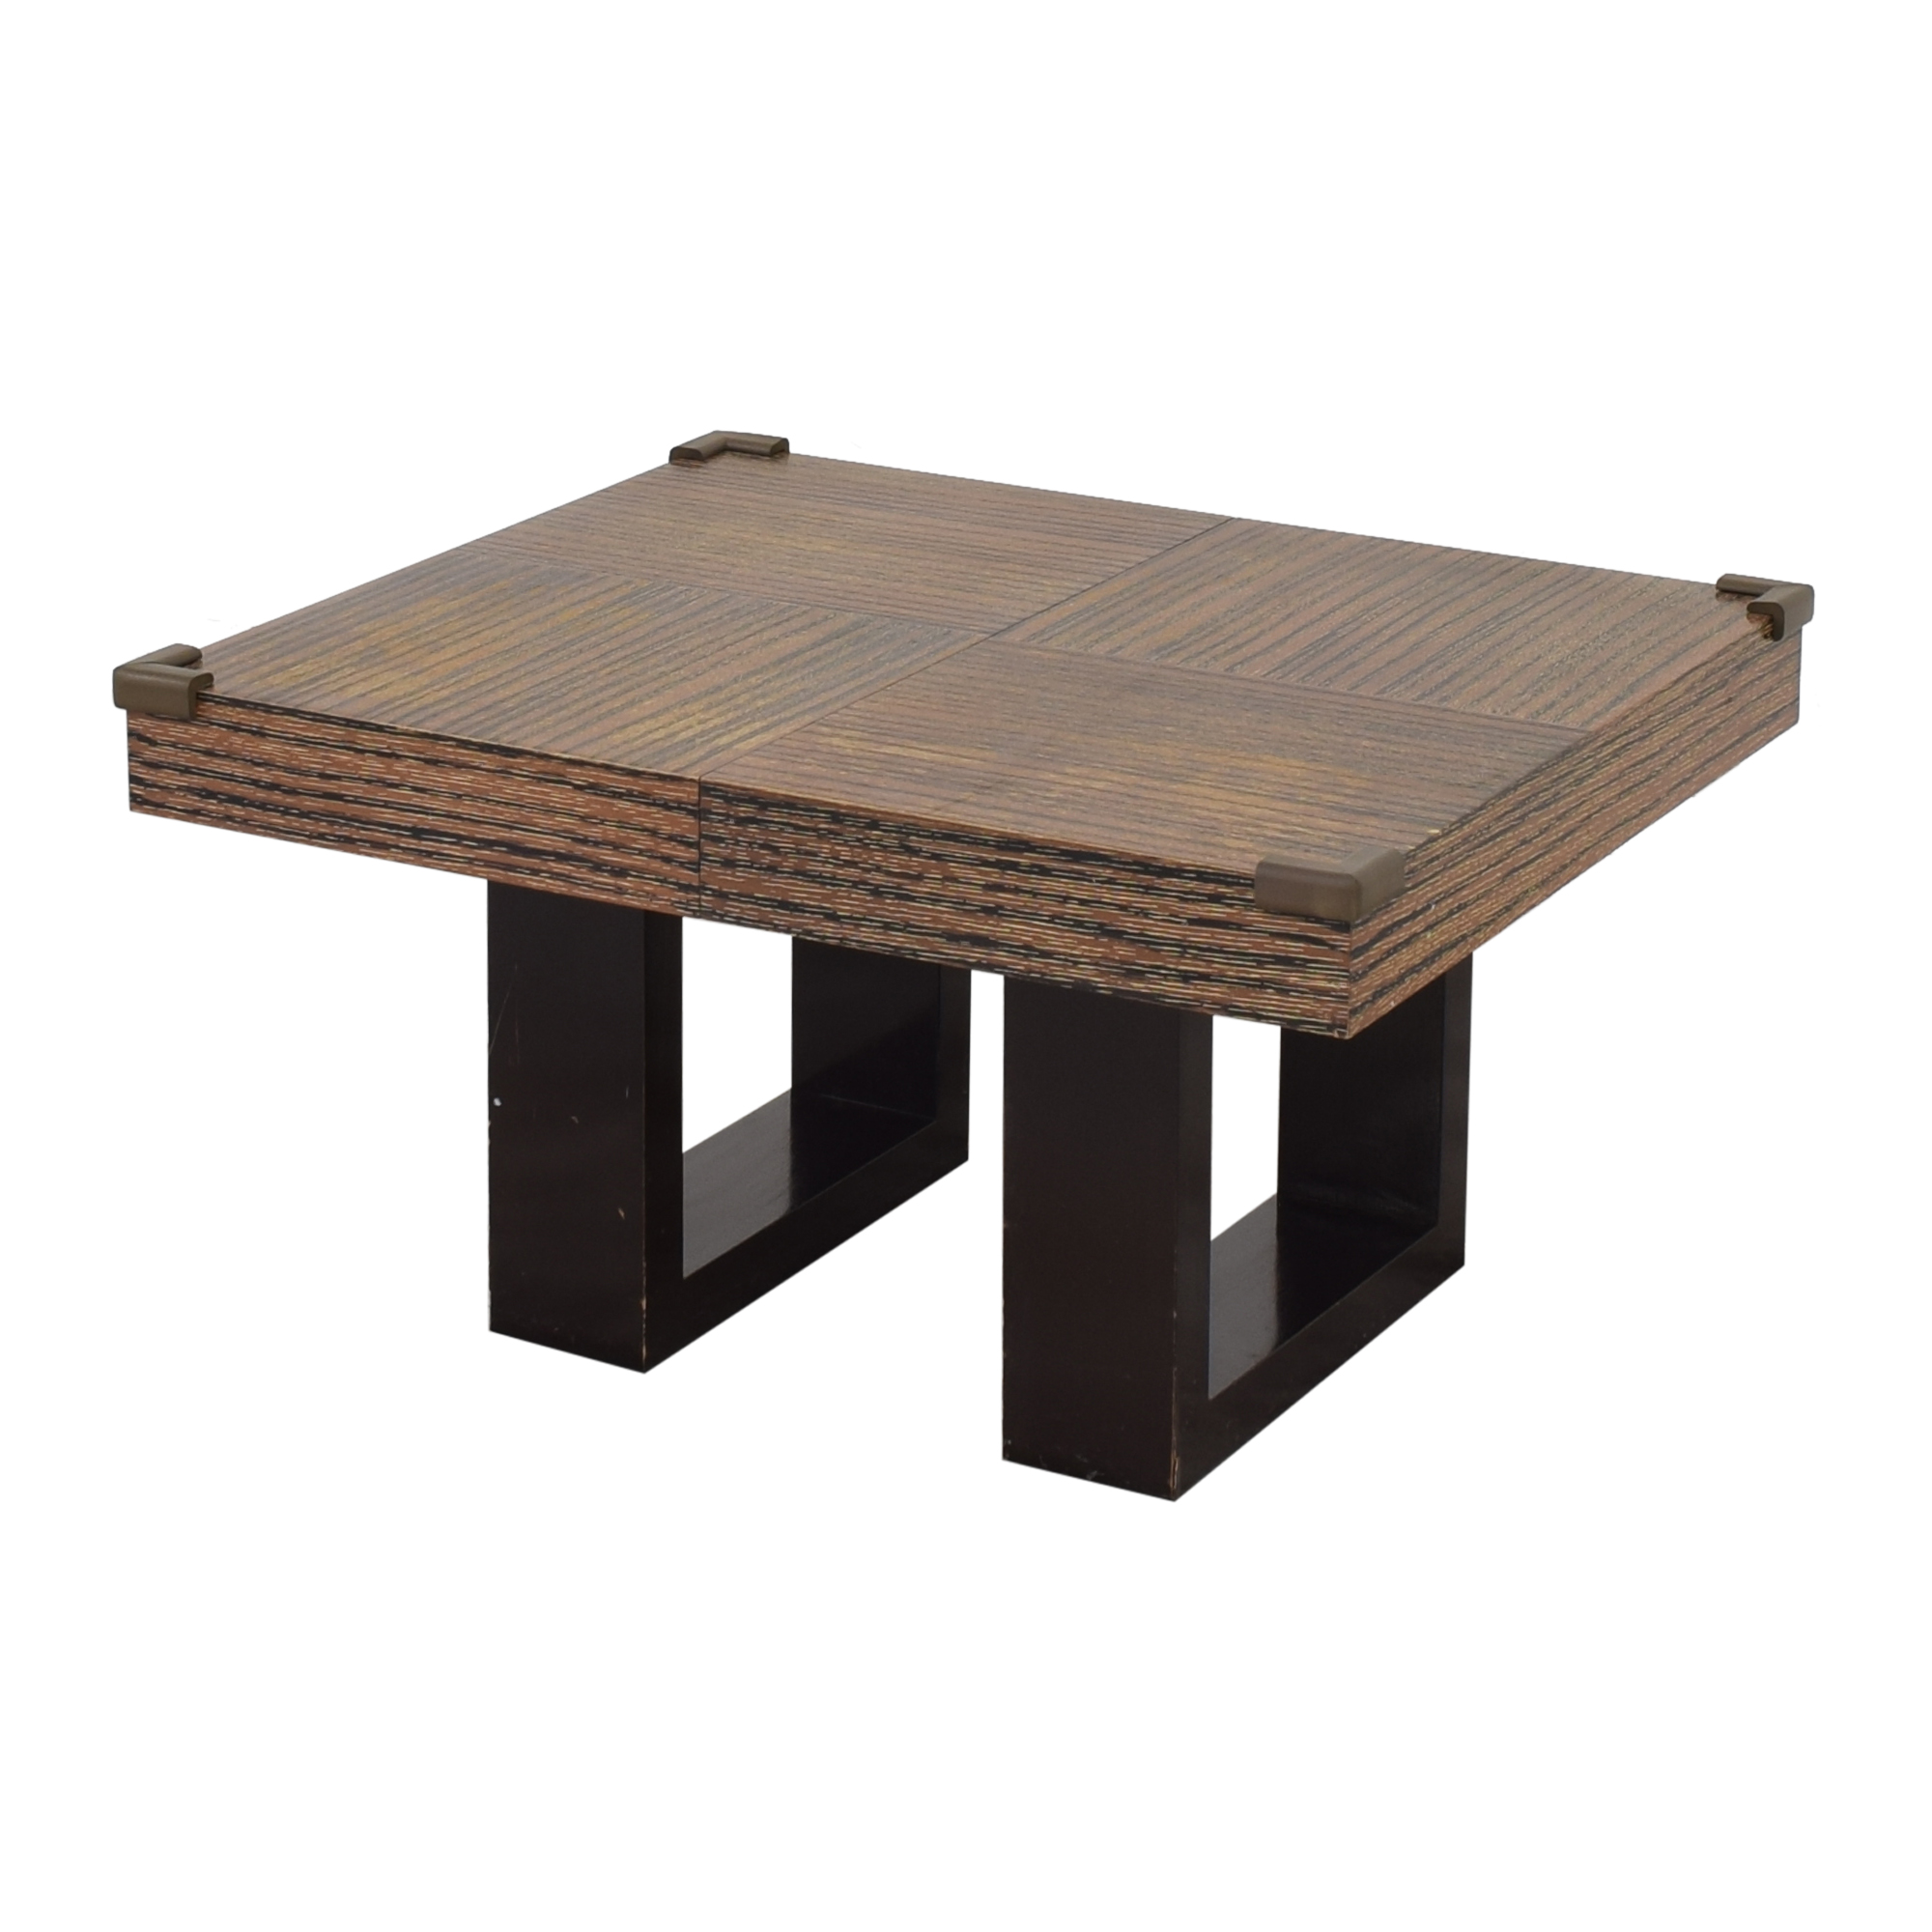 Michael Berman Limited Trousdale Coffee Table / Coffee Tables